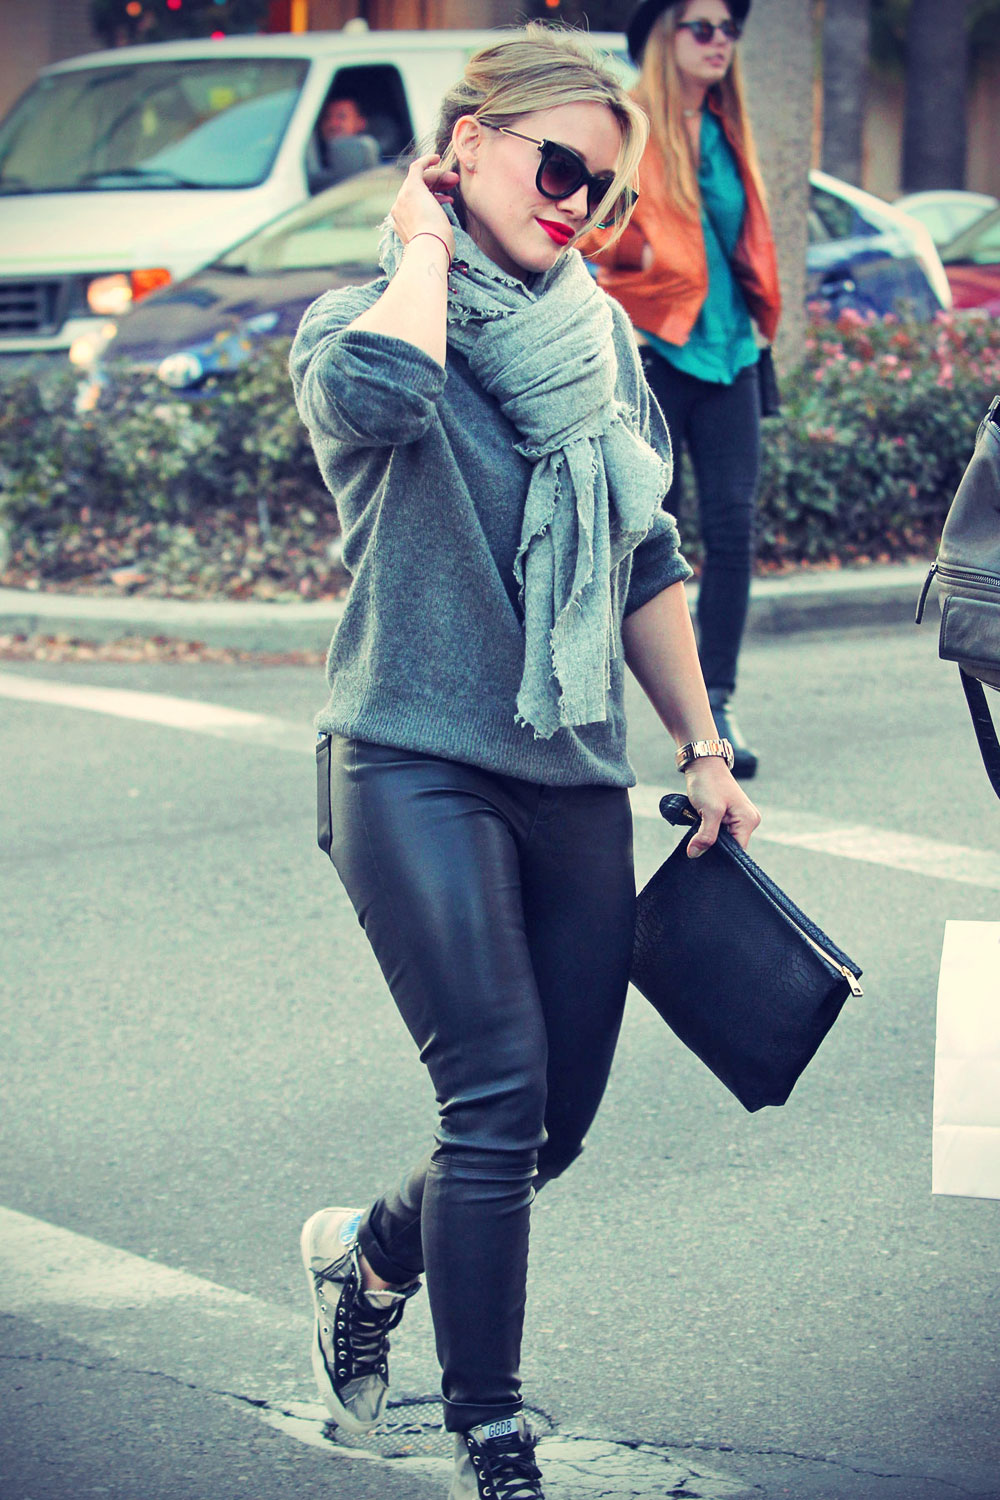 Hilary Duff seen out and about in LA